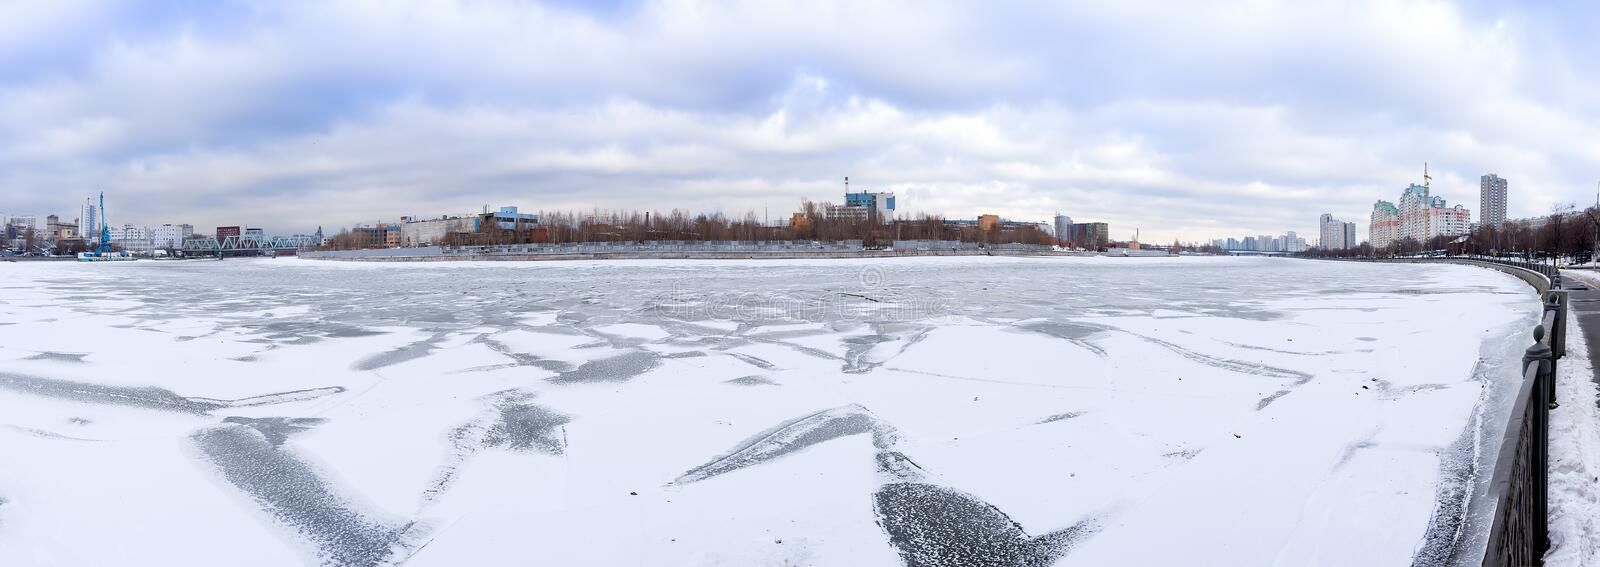 Moscow, the urban area Nagatino,. The abandoned territory of the former ZIL, the Southern federal district. The river under ice stock image